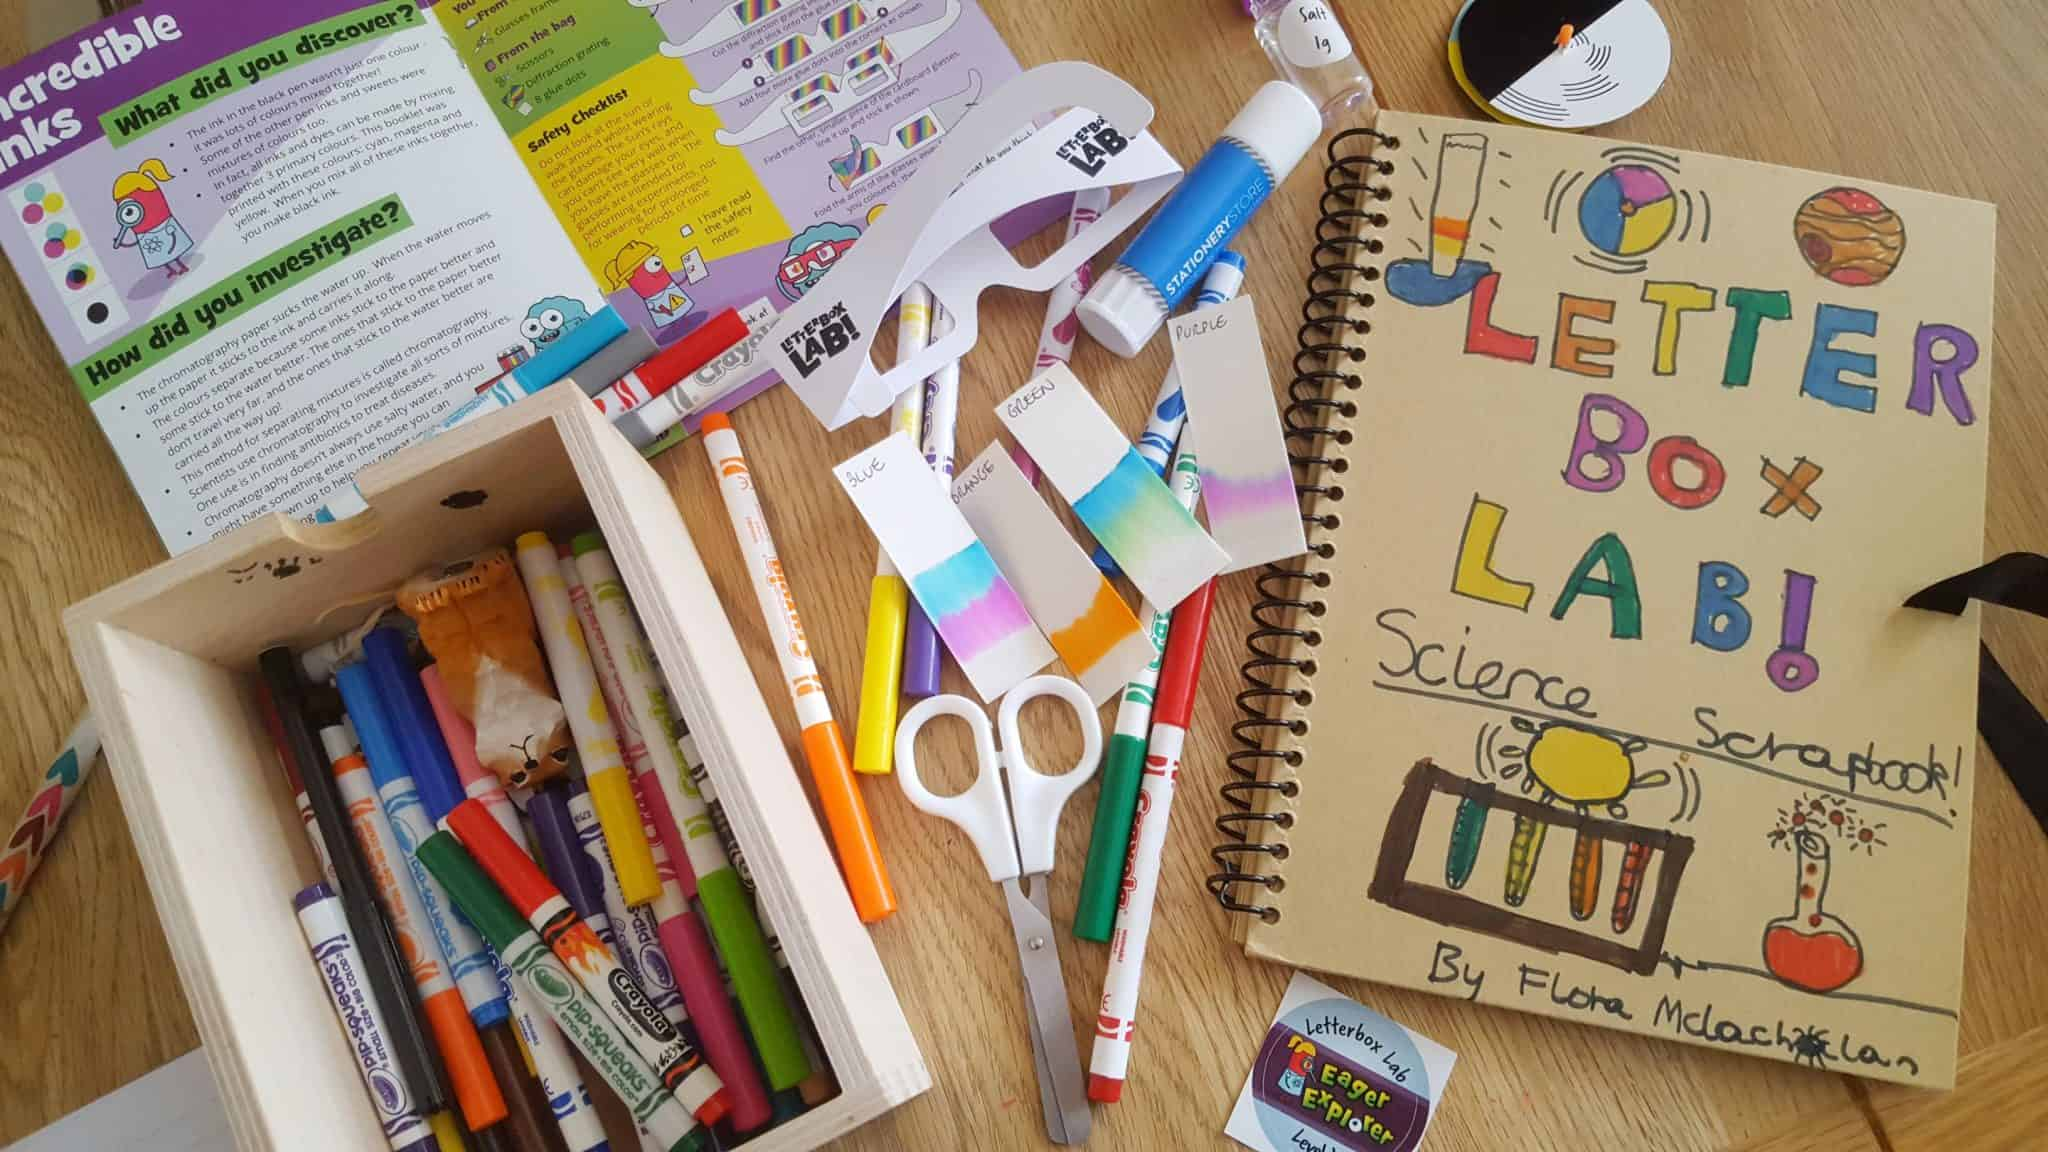 fun-science-experiments-for-kids-with-letterbox-lab